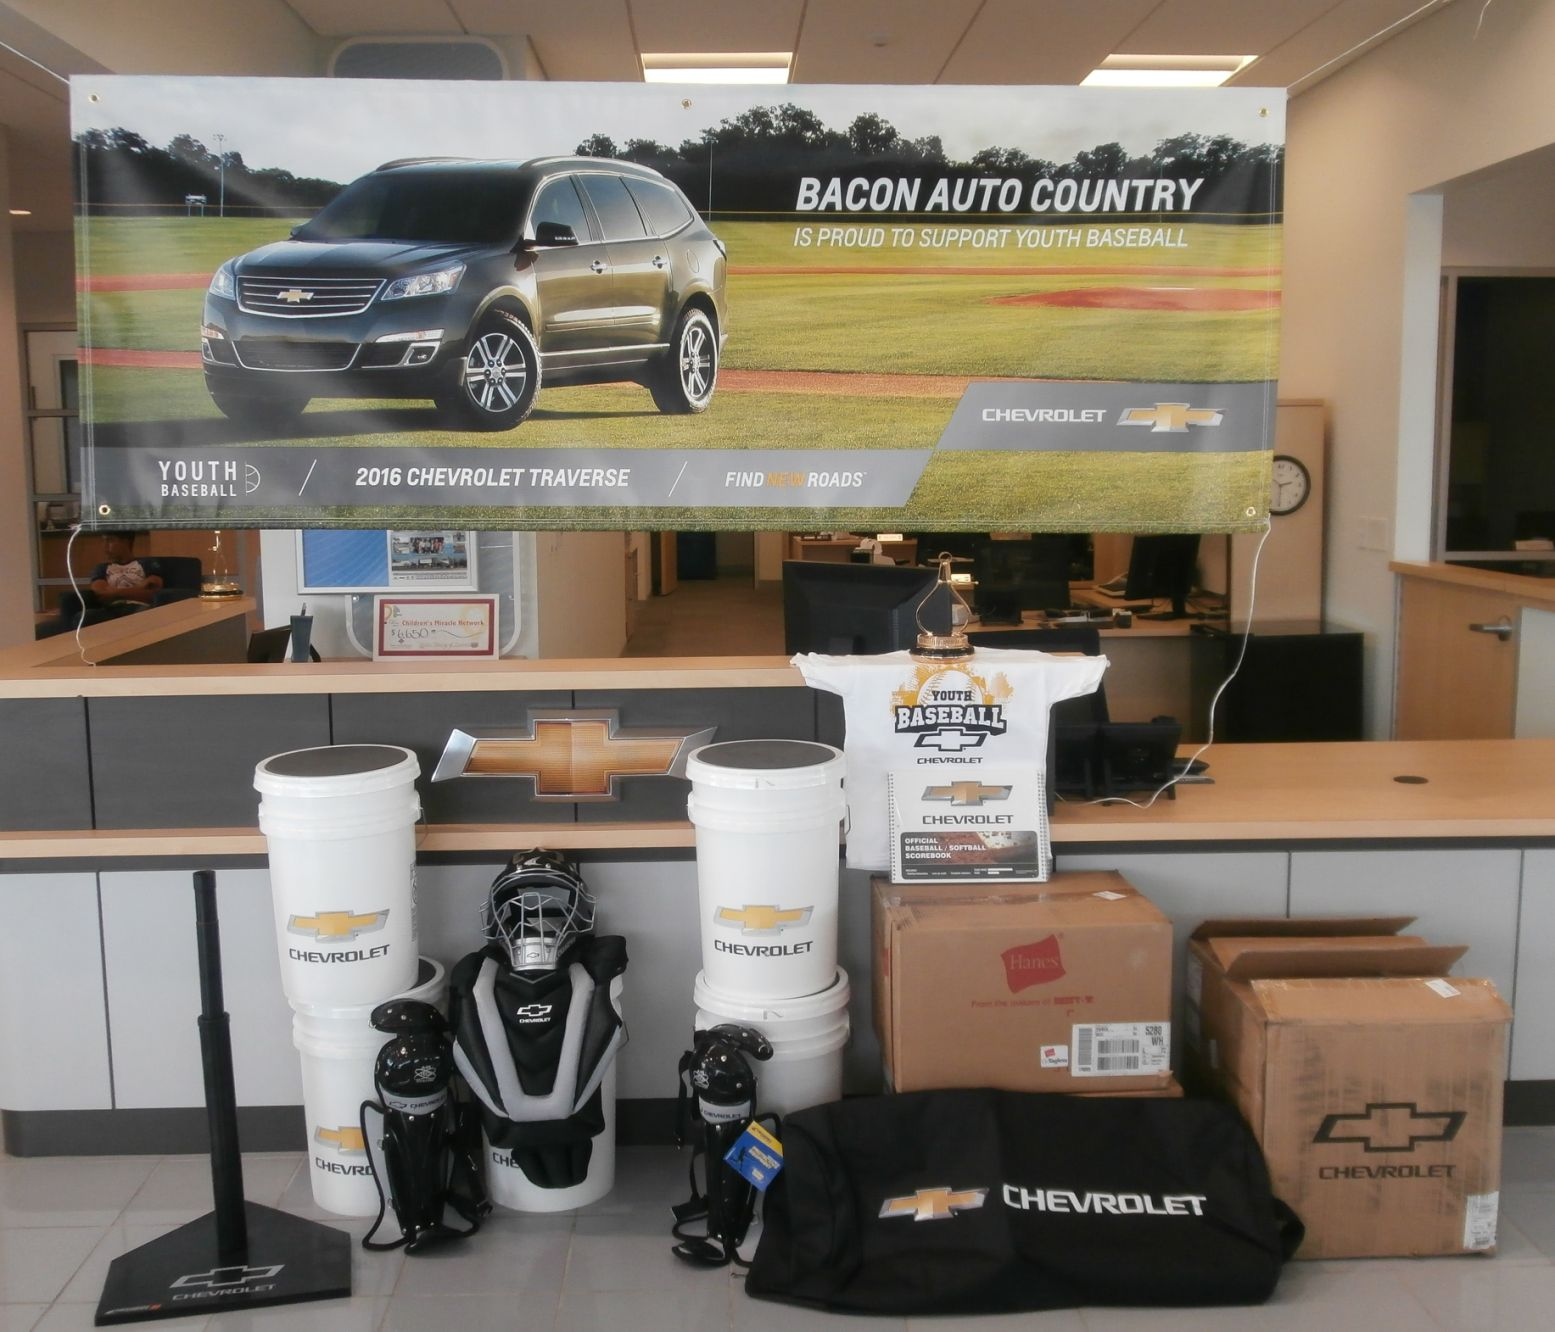 Bacon Auto Country Teamed Up With Chevrolet Youth Baseball To Provide New  Equipment For The Jacksonville Baseball/Softball Associationu0027s Upcoming  Season.